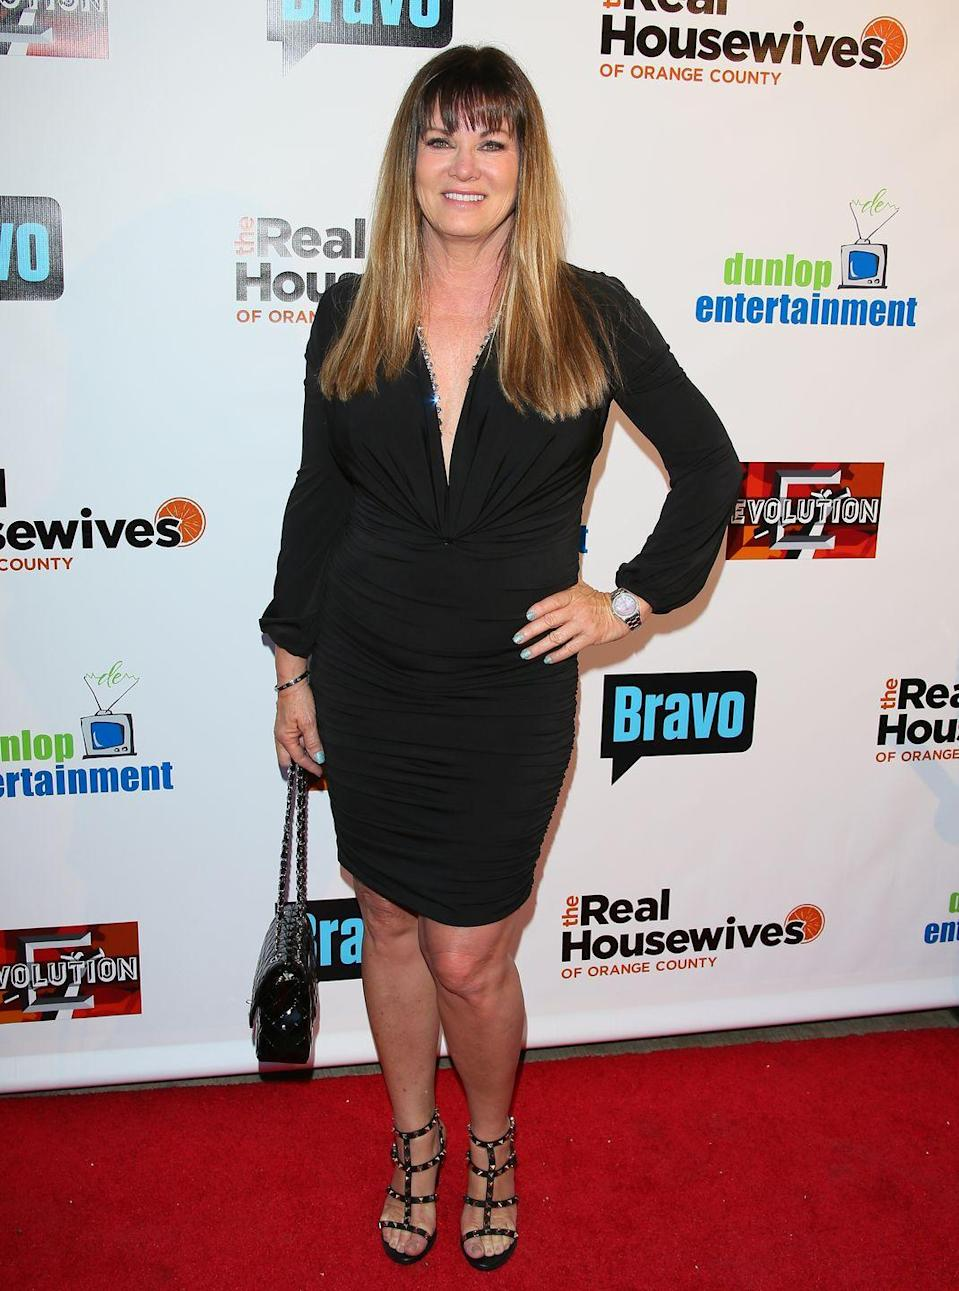 """<p>Jeana Keough was the very first Housewife America met. On March 21, 2006, the opening scene of <em>The Real Housewives of Orange County</em> season 1 introduced Jeana at work as a real estate agent in the exclusive gated communities of Coto de Caza, California. Jeana's marriage fell apart during her time on the show, which she left after five seasons to refocus on her career. She is still working as a <a href=""""https://www.coldwellbanker.com/Coldwell-Banker-Realty-12669c/Jeana-Keough-603281a"""" rel=""""nofollow noopener"""" target=""""_blank"""" data-ylk=""""slk:real estate agent"""" class=""""link rapid-noclick-resp"""">real estate agent</a> in Orange County today.</p>"""